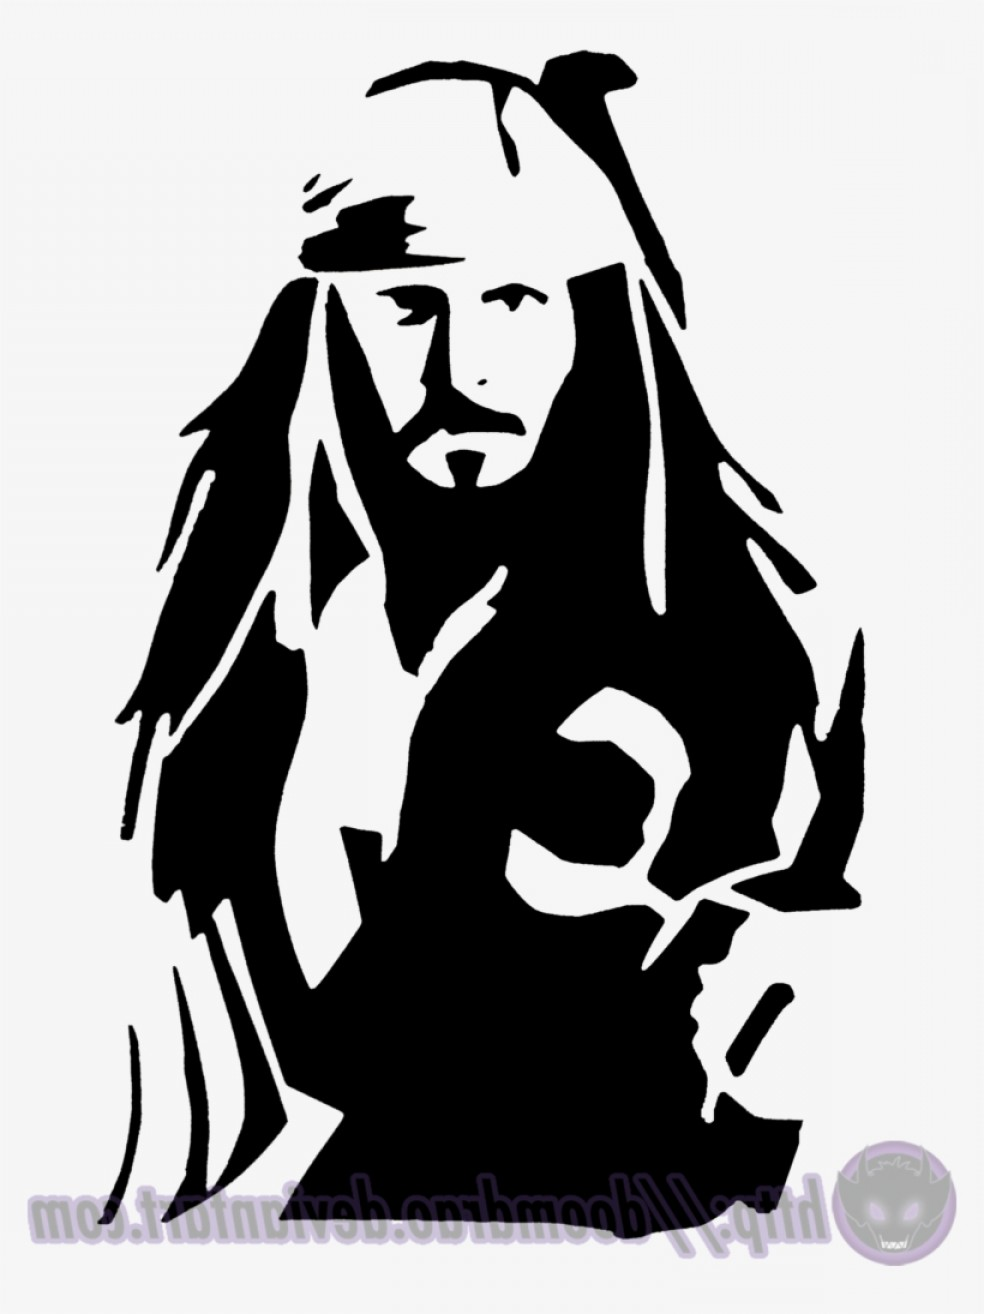 Jack sparrow clipart svg royalty free download Jack Sparrow Vector Logo | CQRecords svg royalty free download